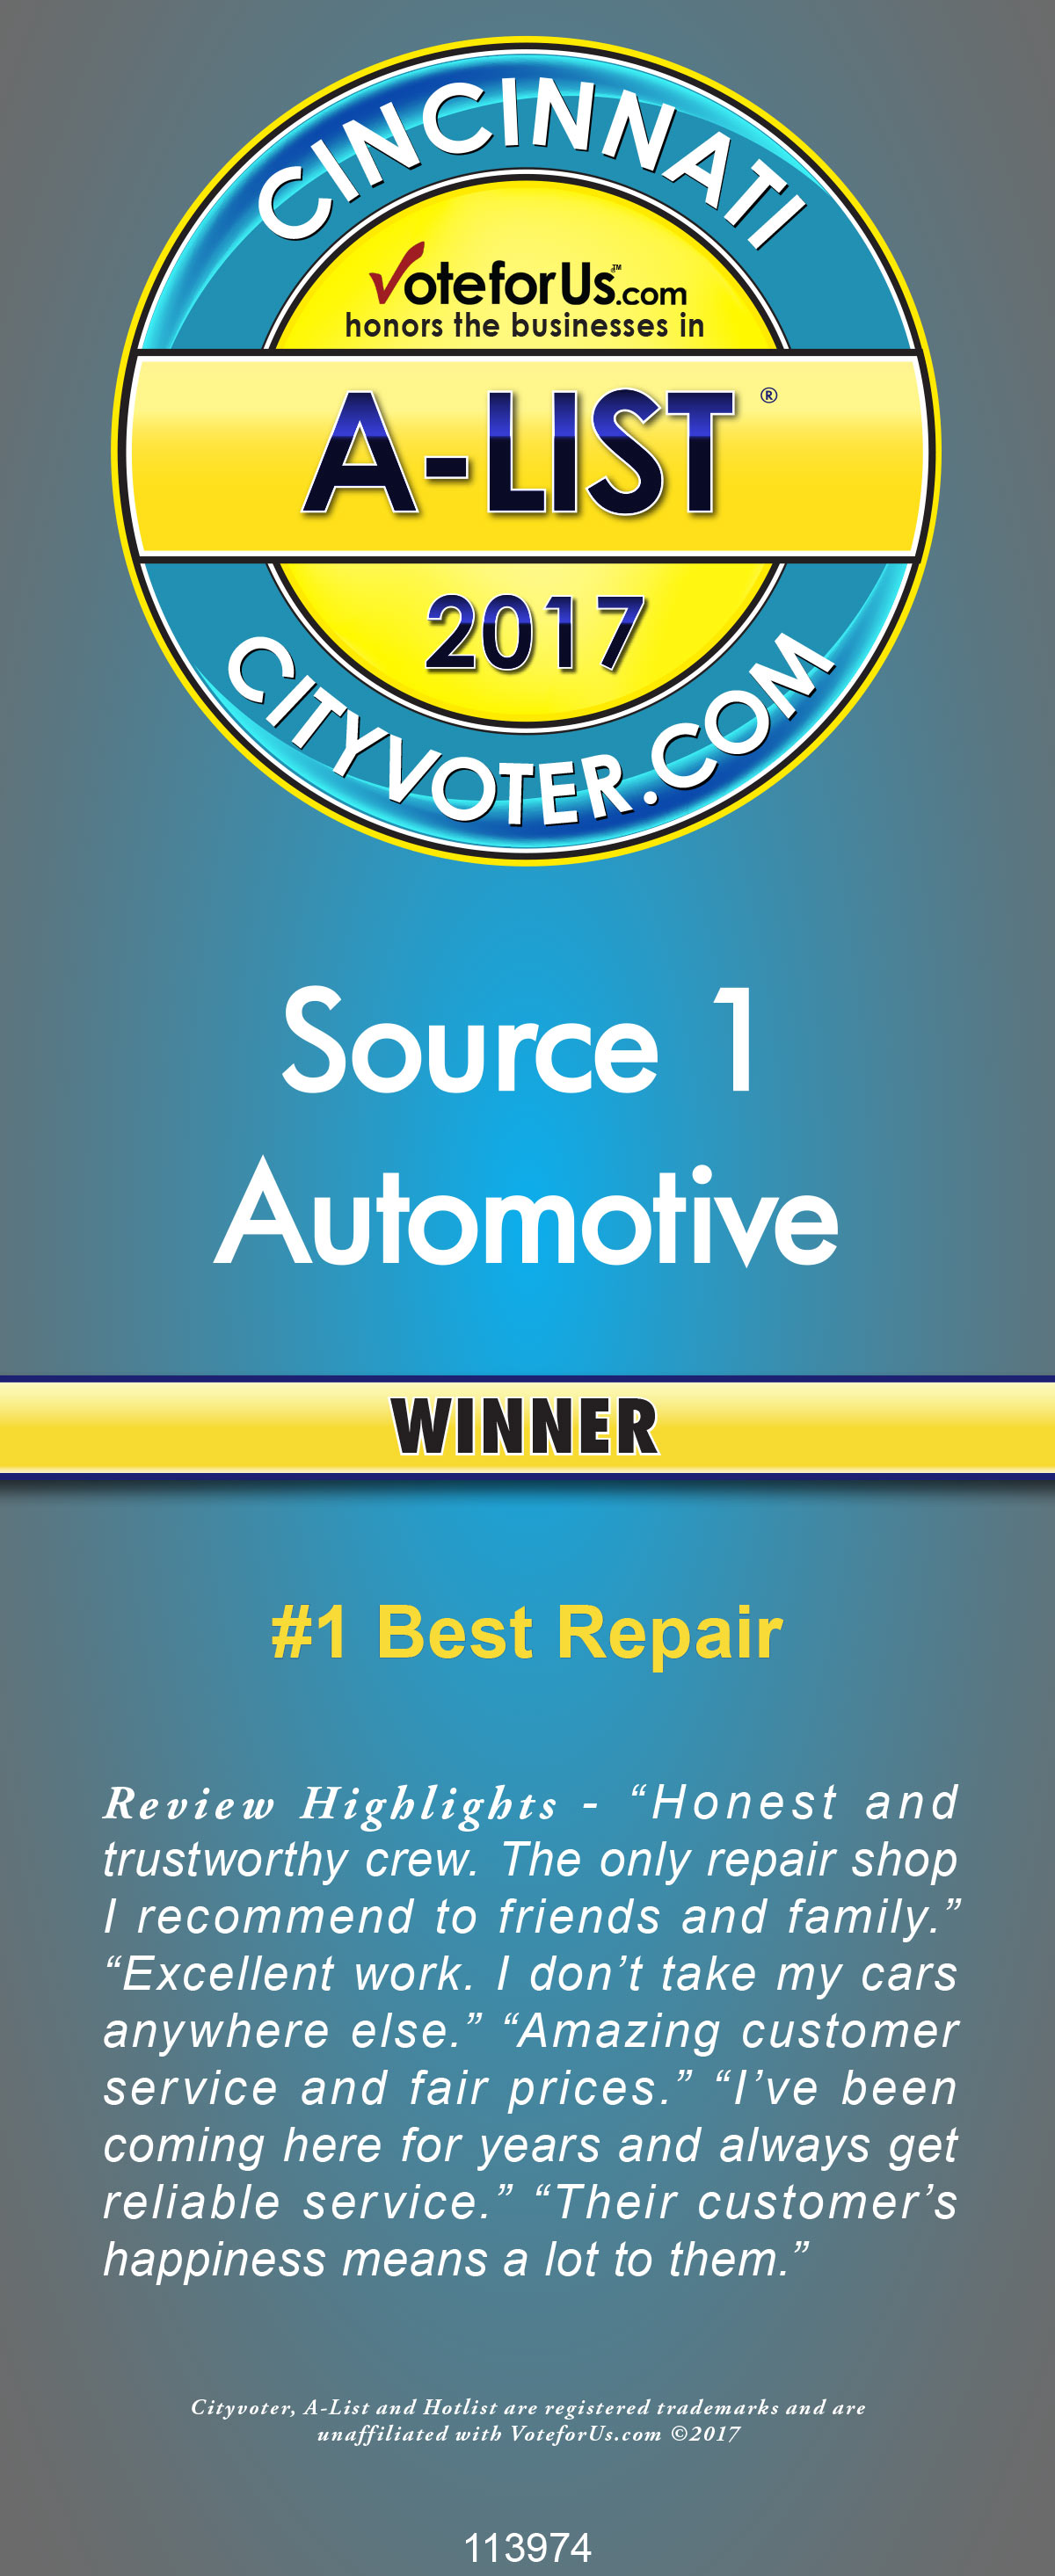 Number One Best Repair